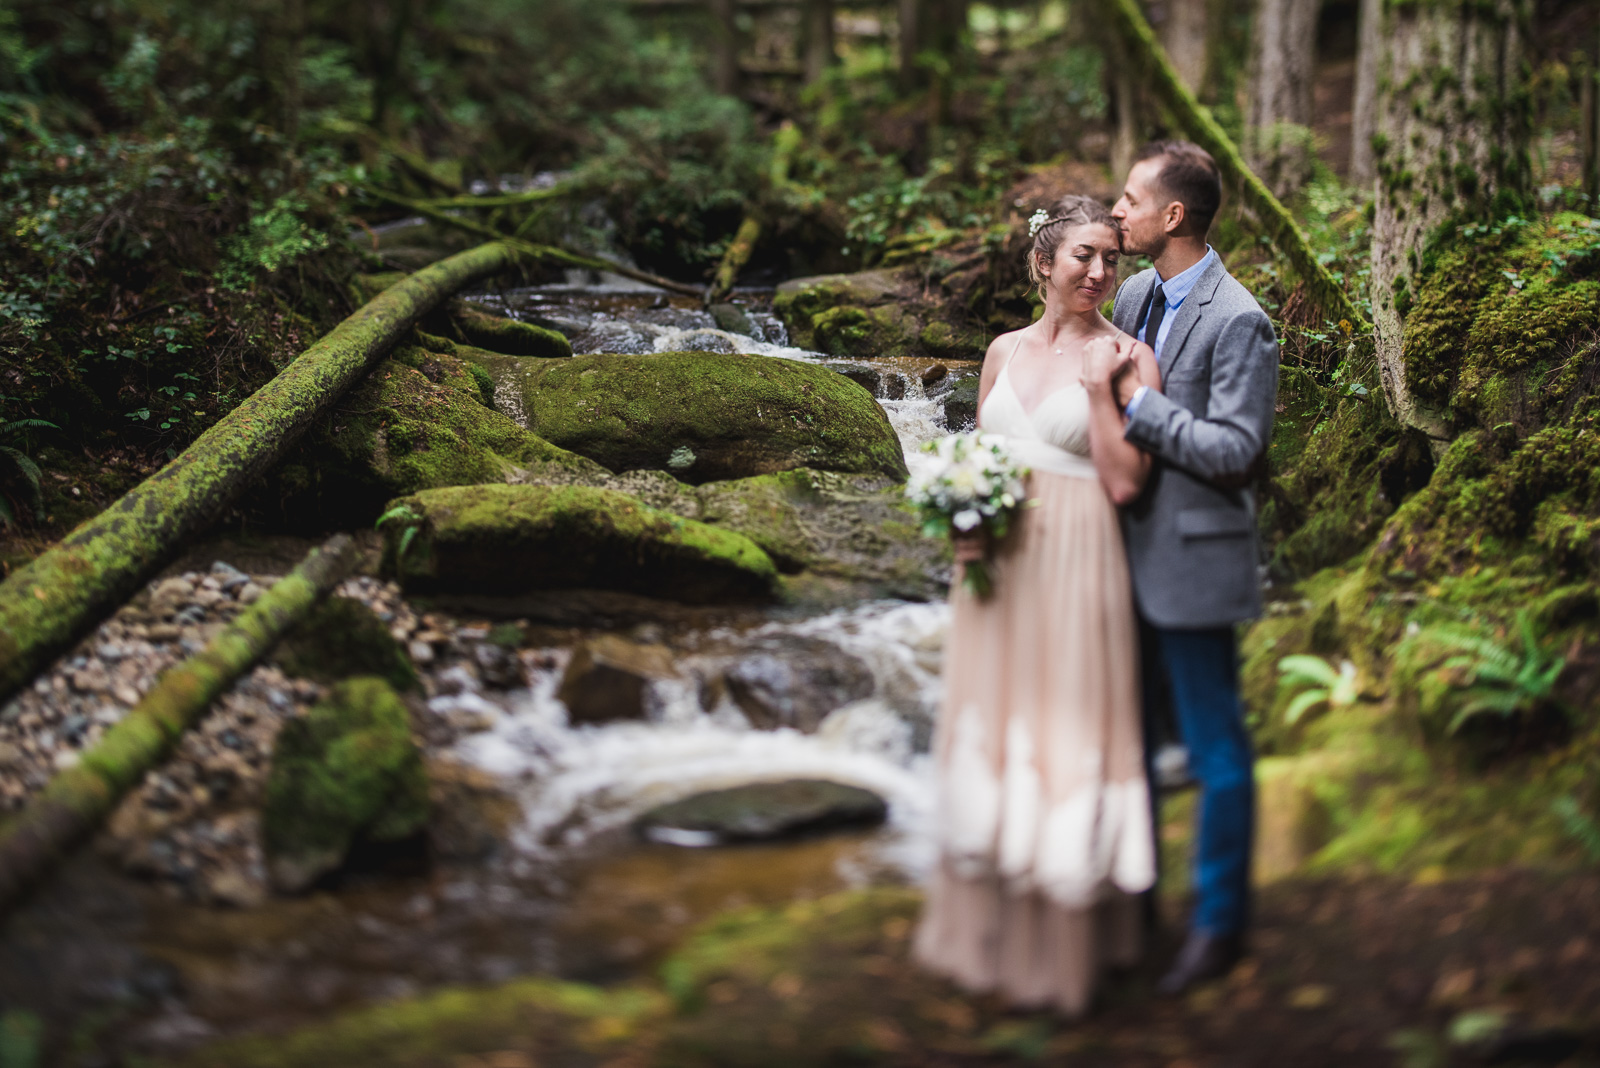 vancouver-island-wedding-photographers-cliff-gilker-park-smugglers-cove-elopement-18.jpg